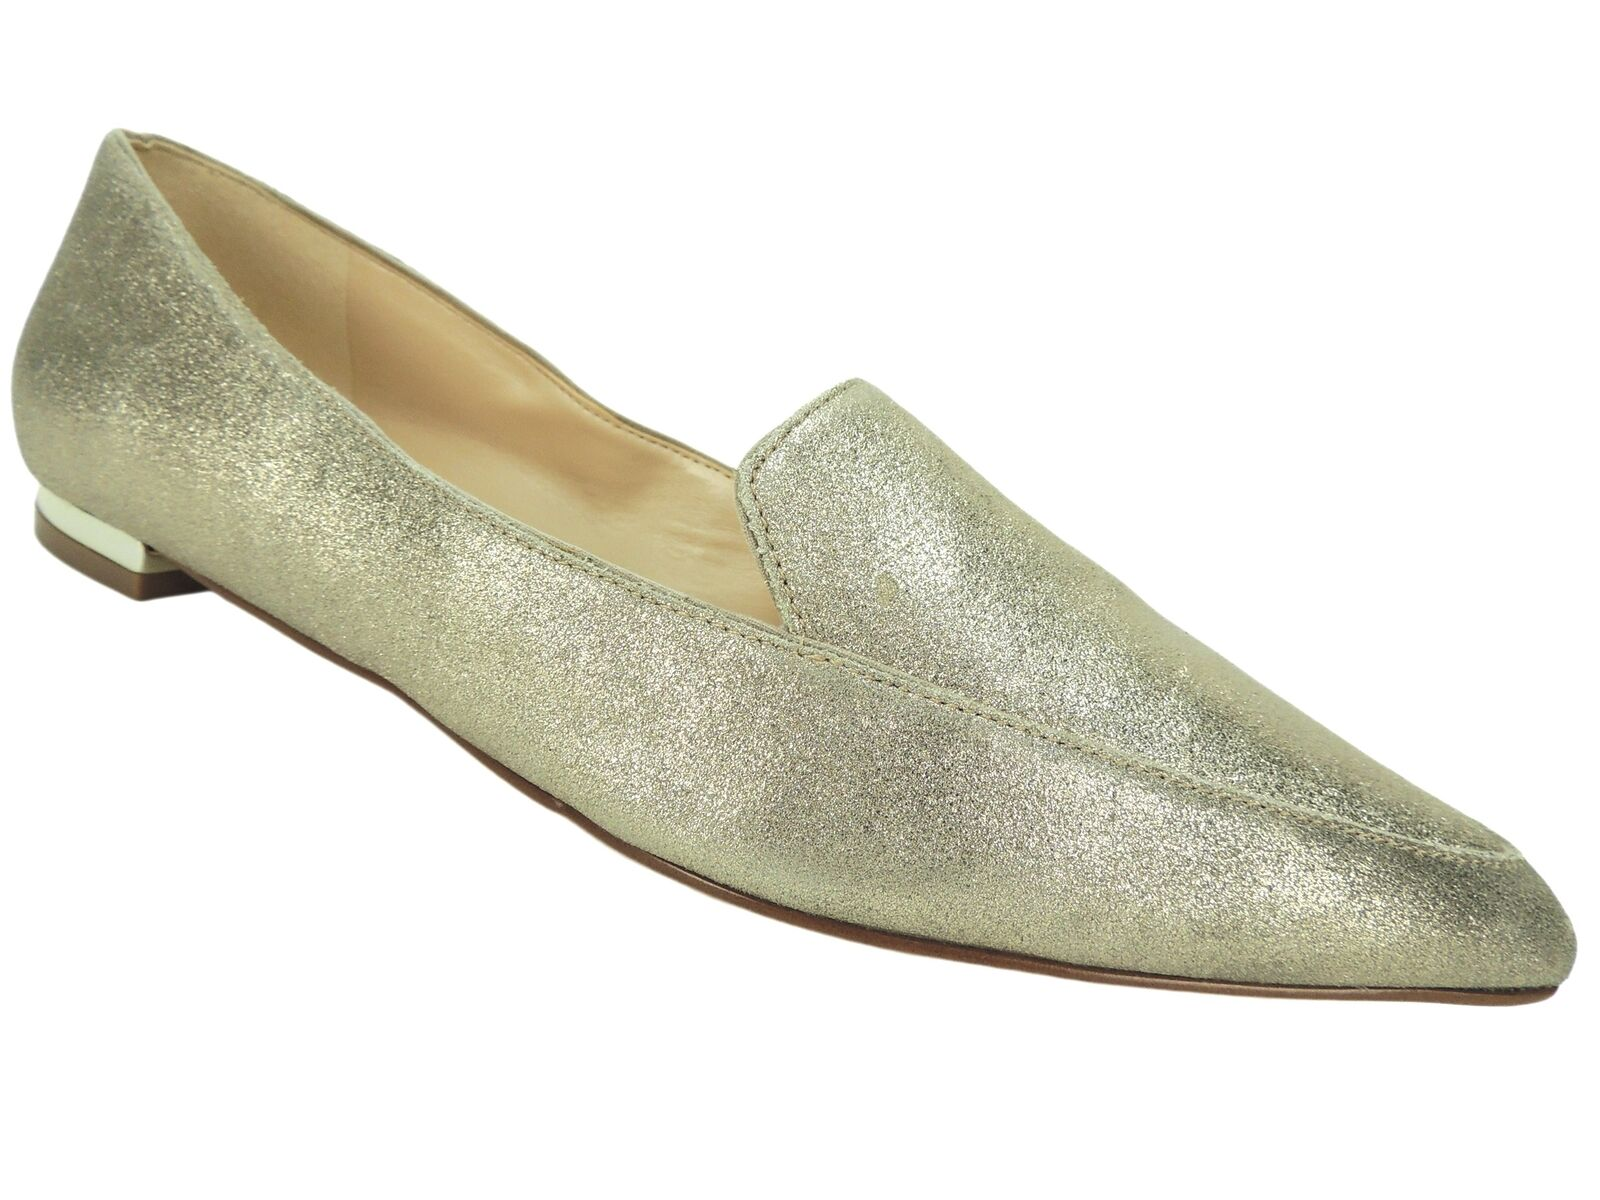 Nine West Women's Abay Pointed-Toe Flats Gold Metallic Metallic Gold Size 9 M 23636a